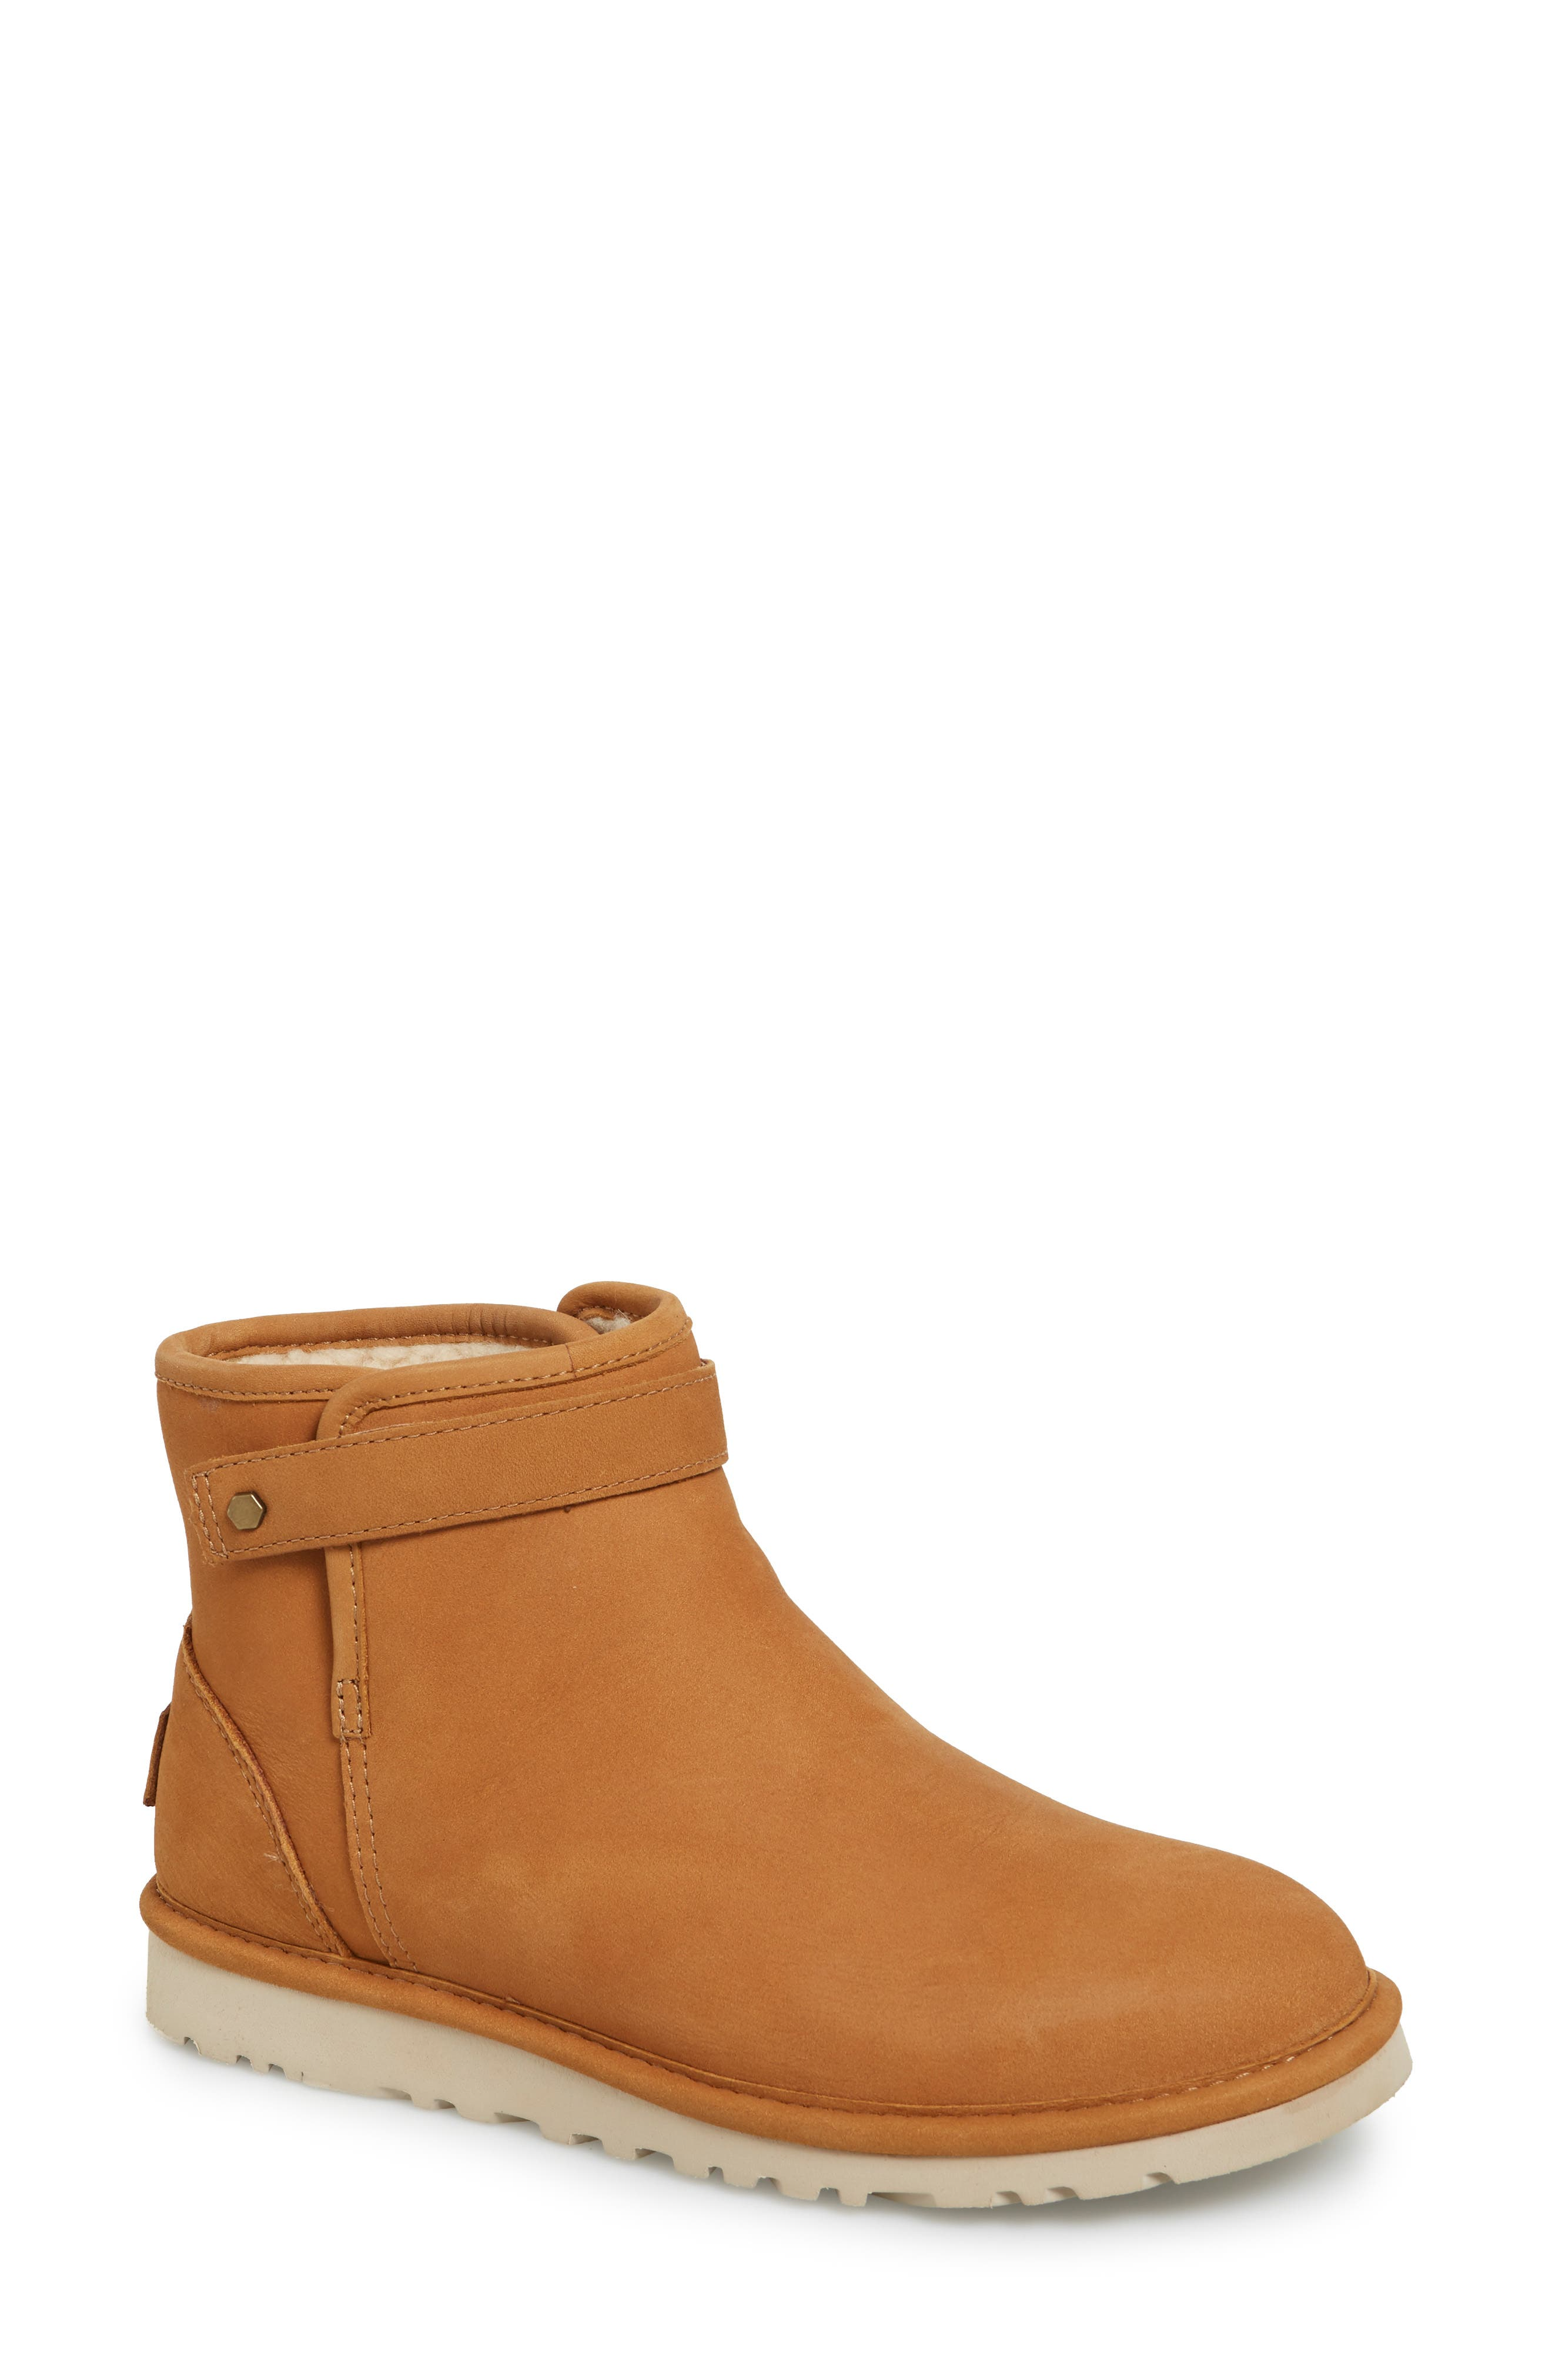 'Rella' Leather Ankle Boot,                             Alternate thumbnail 5, color,                             219